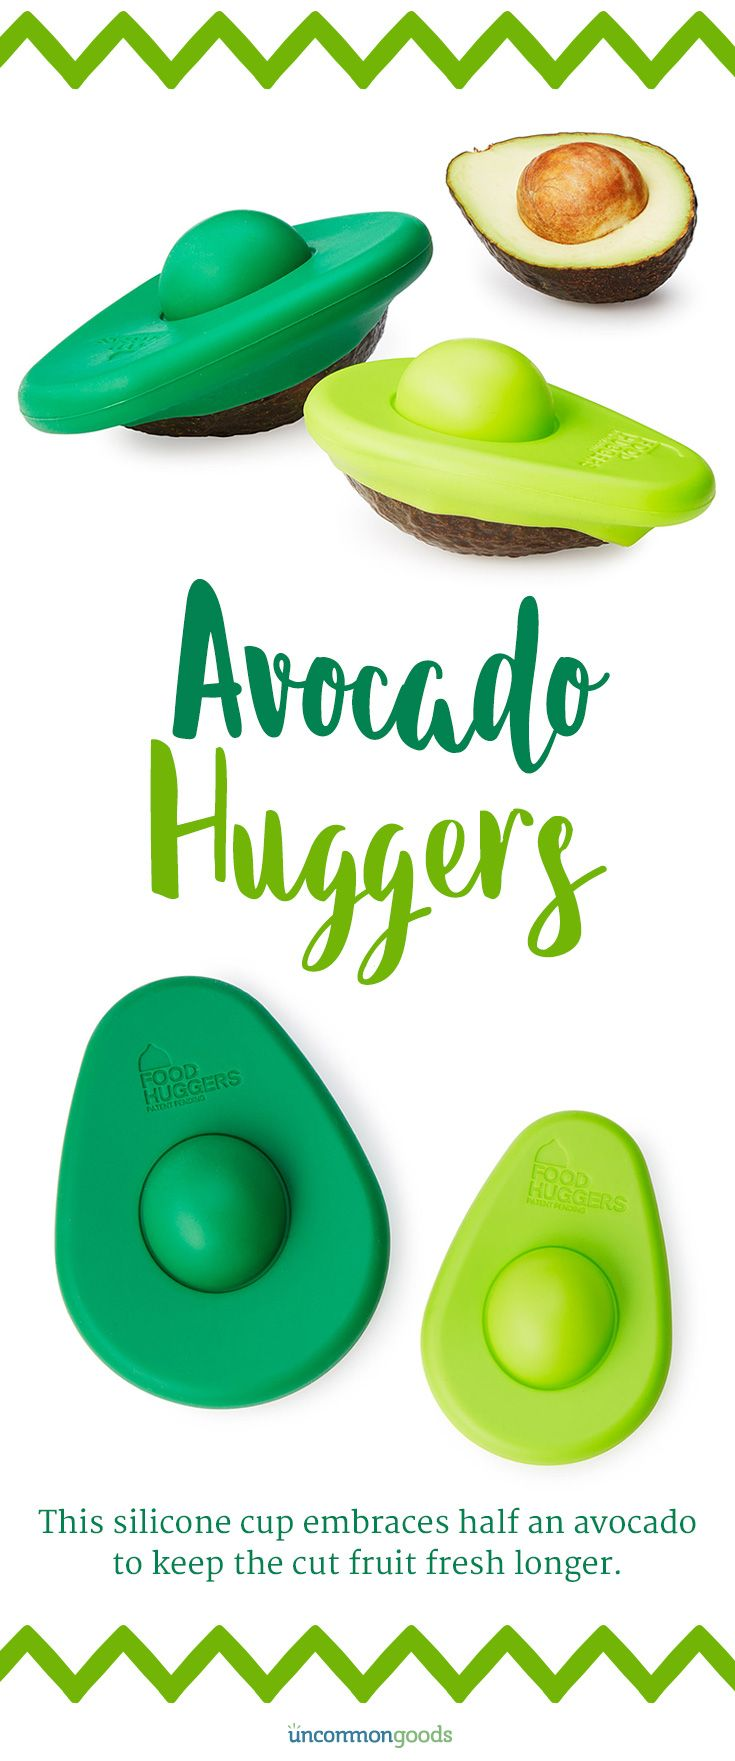 This silicone cup embraces half an avocado to keep the cut fruit fresh longer. Maybe something for https://Addgeeks.com ? http://amzn.to/2stgo2U